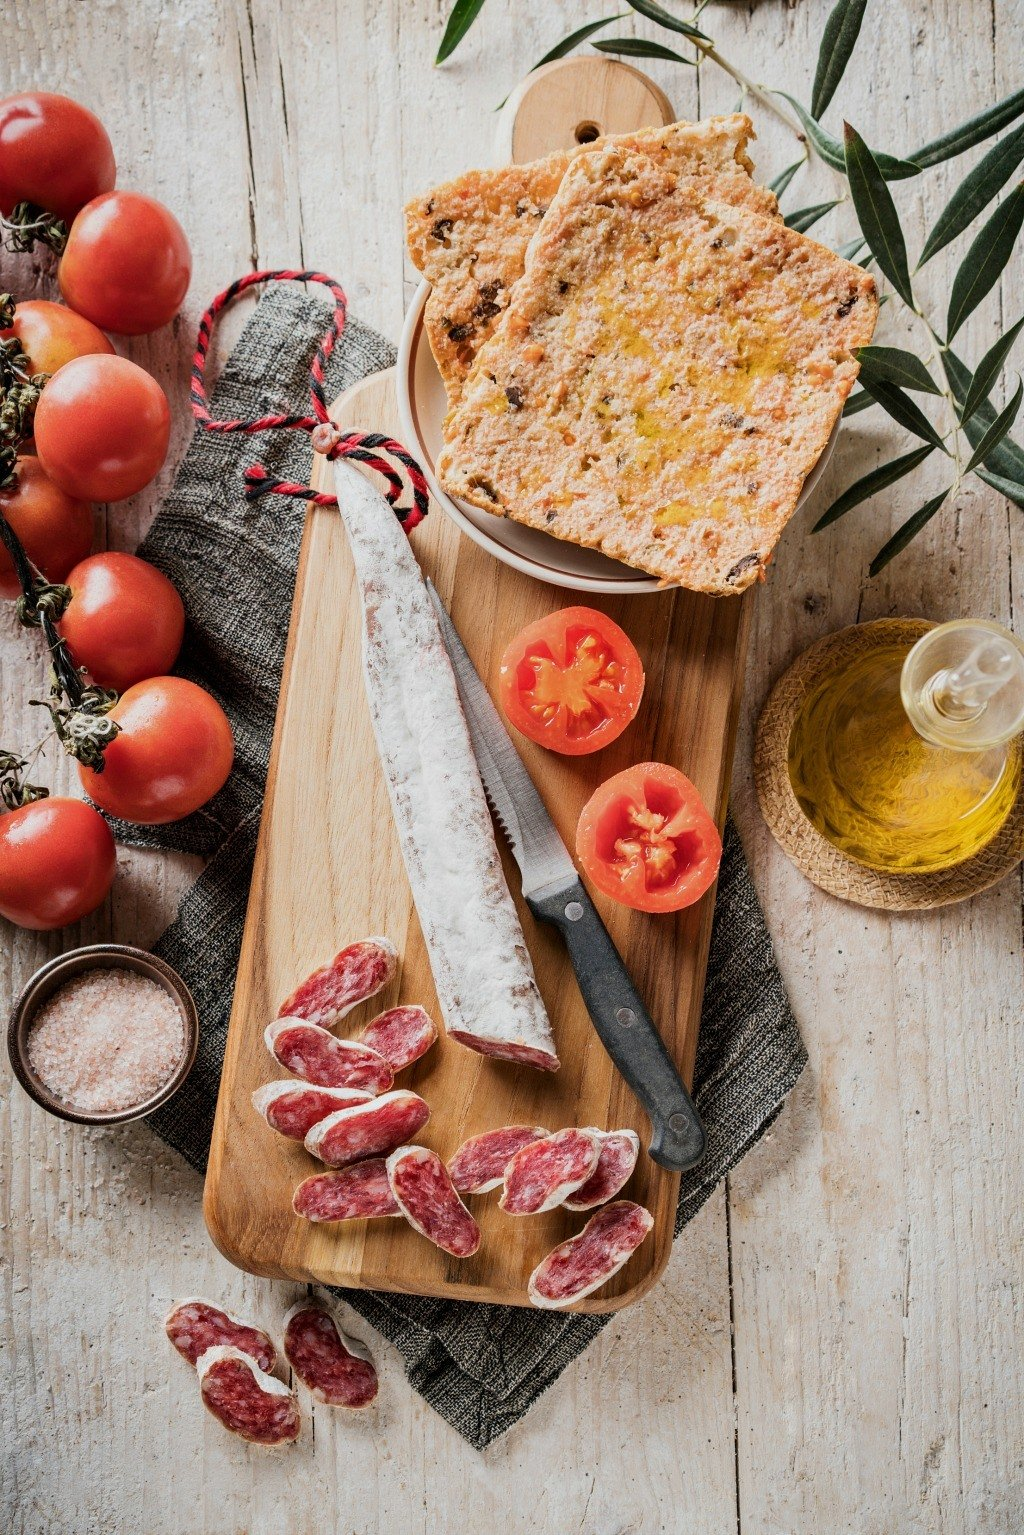 Popular Online Food Guide| An Insider's Guide to the Classic Flavors of Catalonia